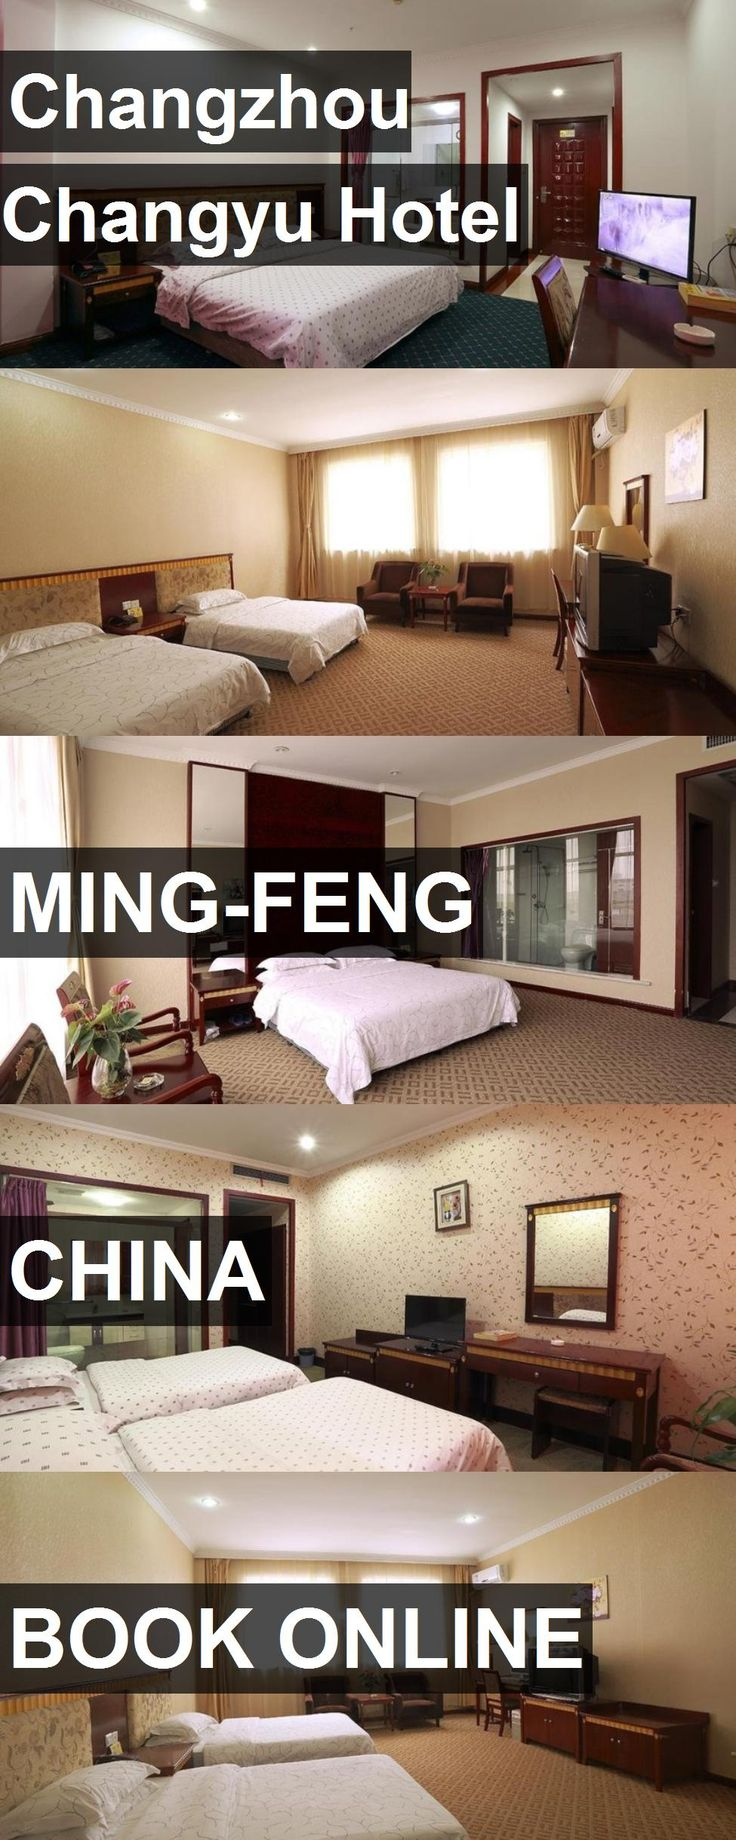 Changzhou Changyu Hotel in Ming-feng, China. For more information, photos, reviews and best prices please follow the link. #China #Ming-feng #travel #vacation #hotel